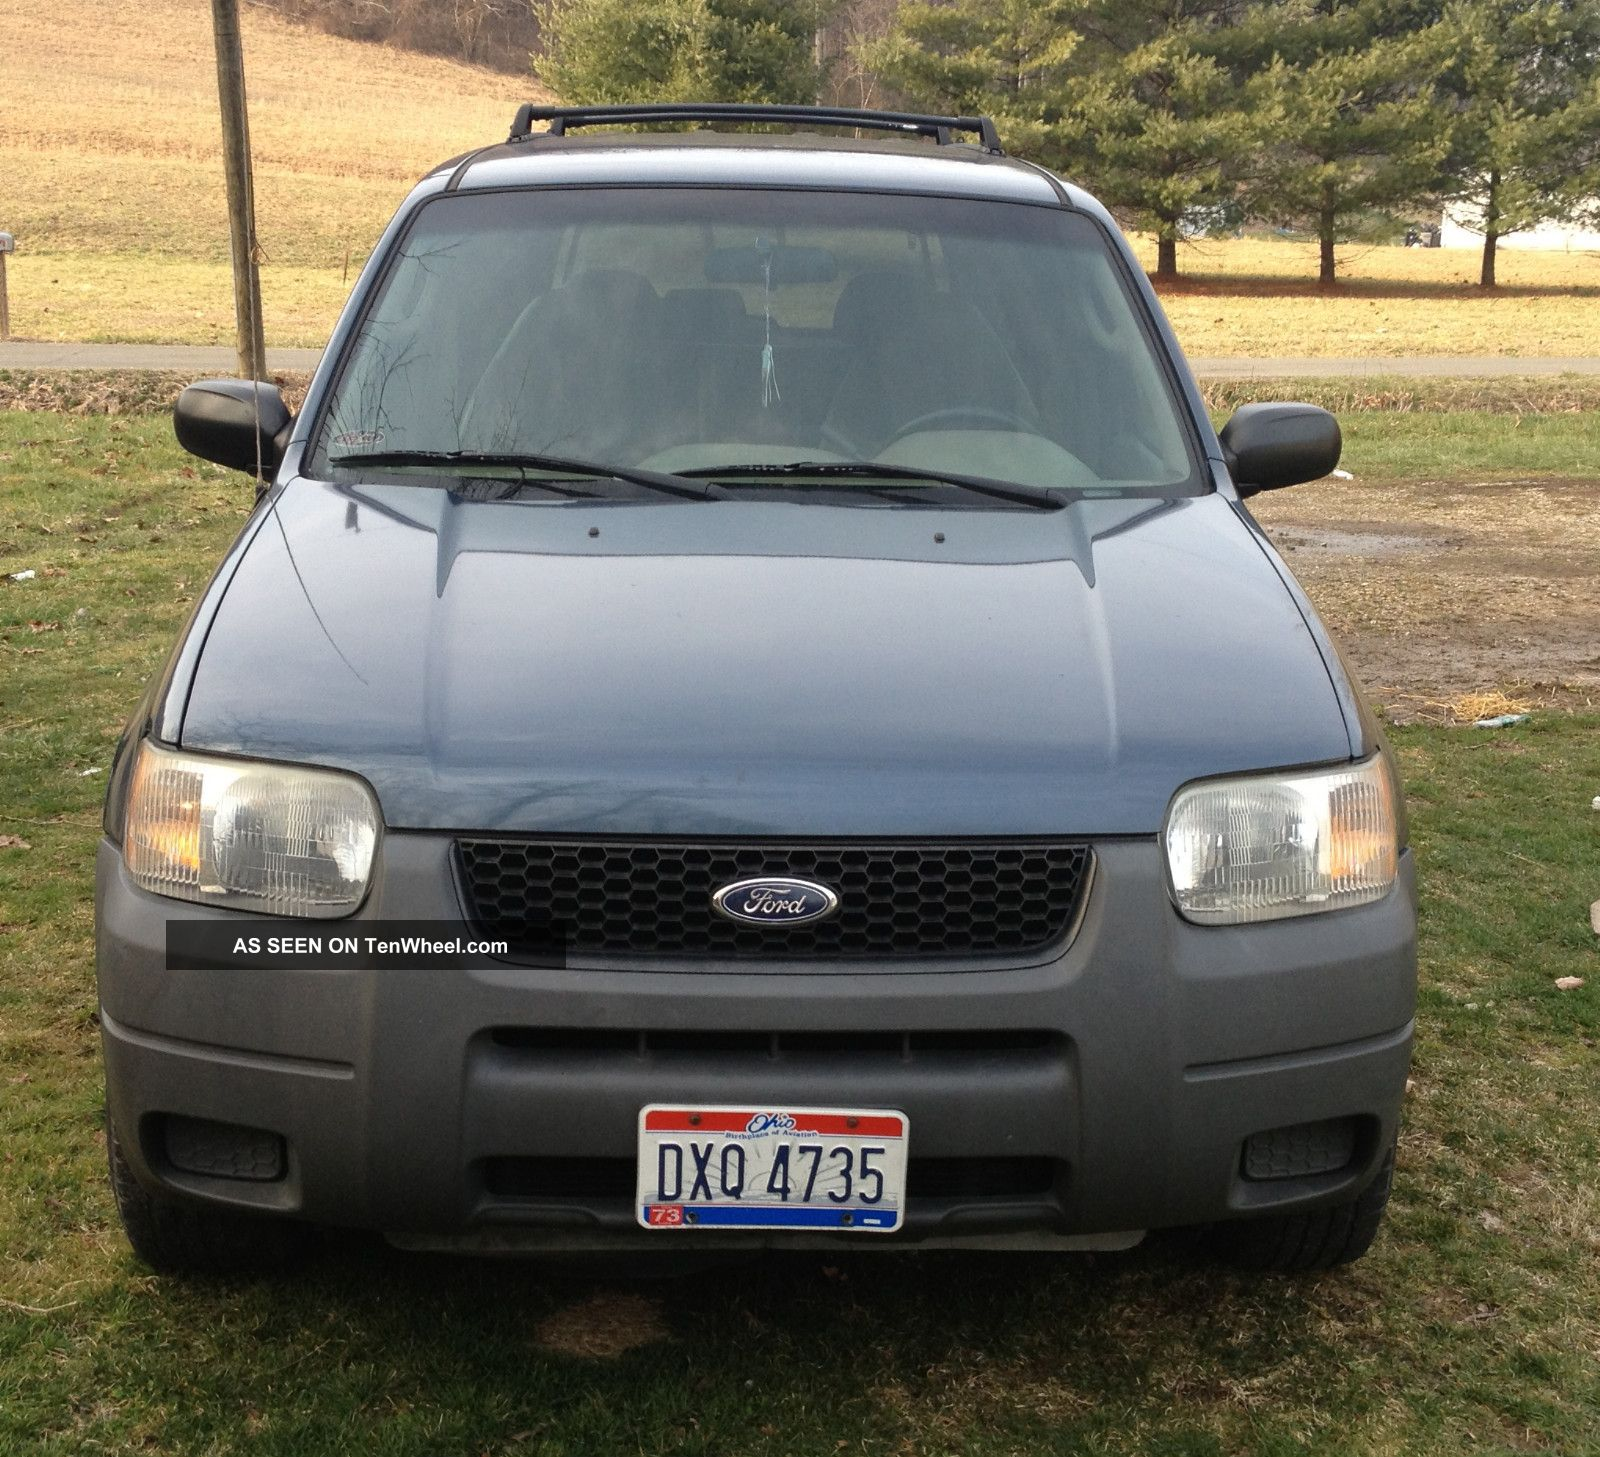 2004 Land Rover Discovery Se Sport Utility 4 Door Green On: 2001 Ford Escape Xls Sport Utility 4